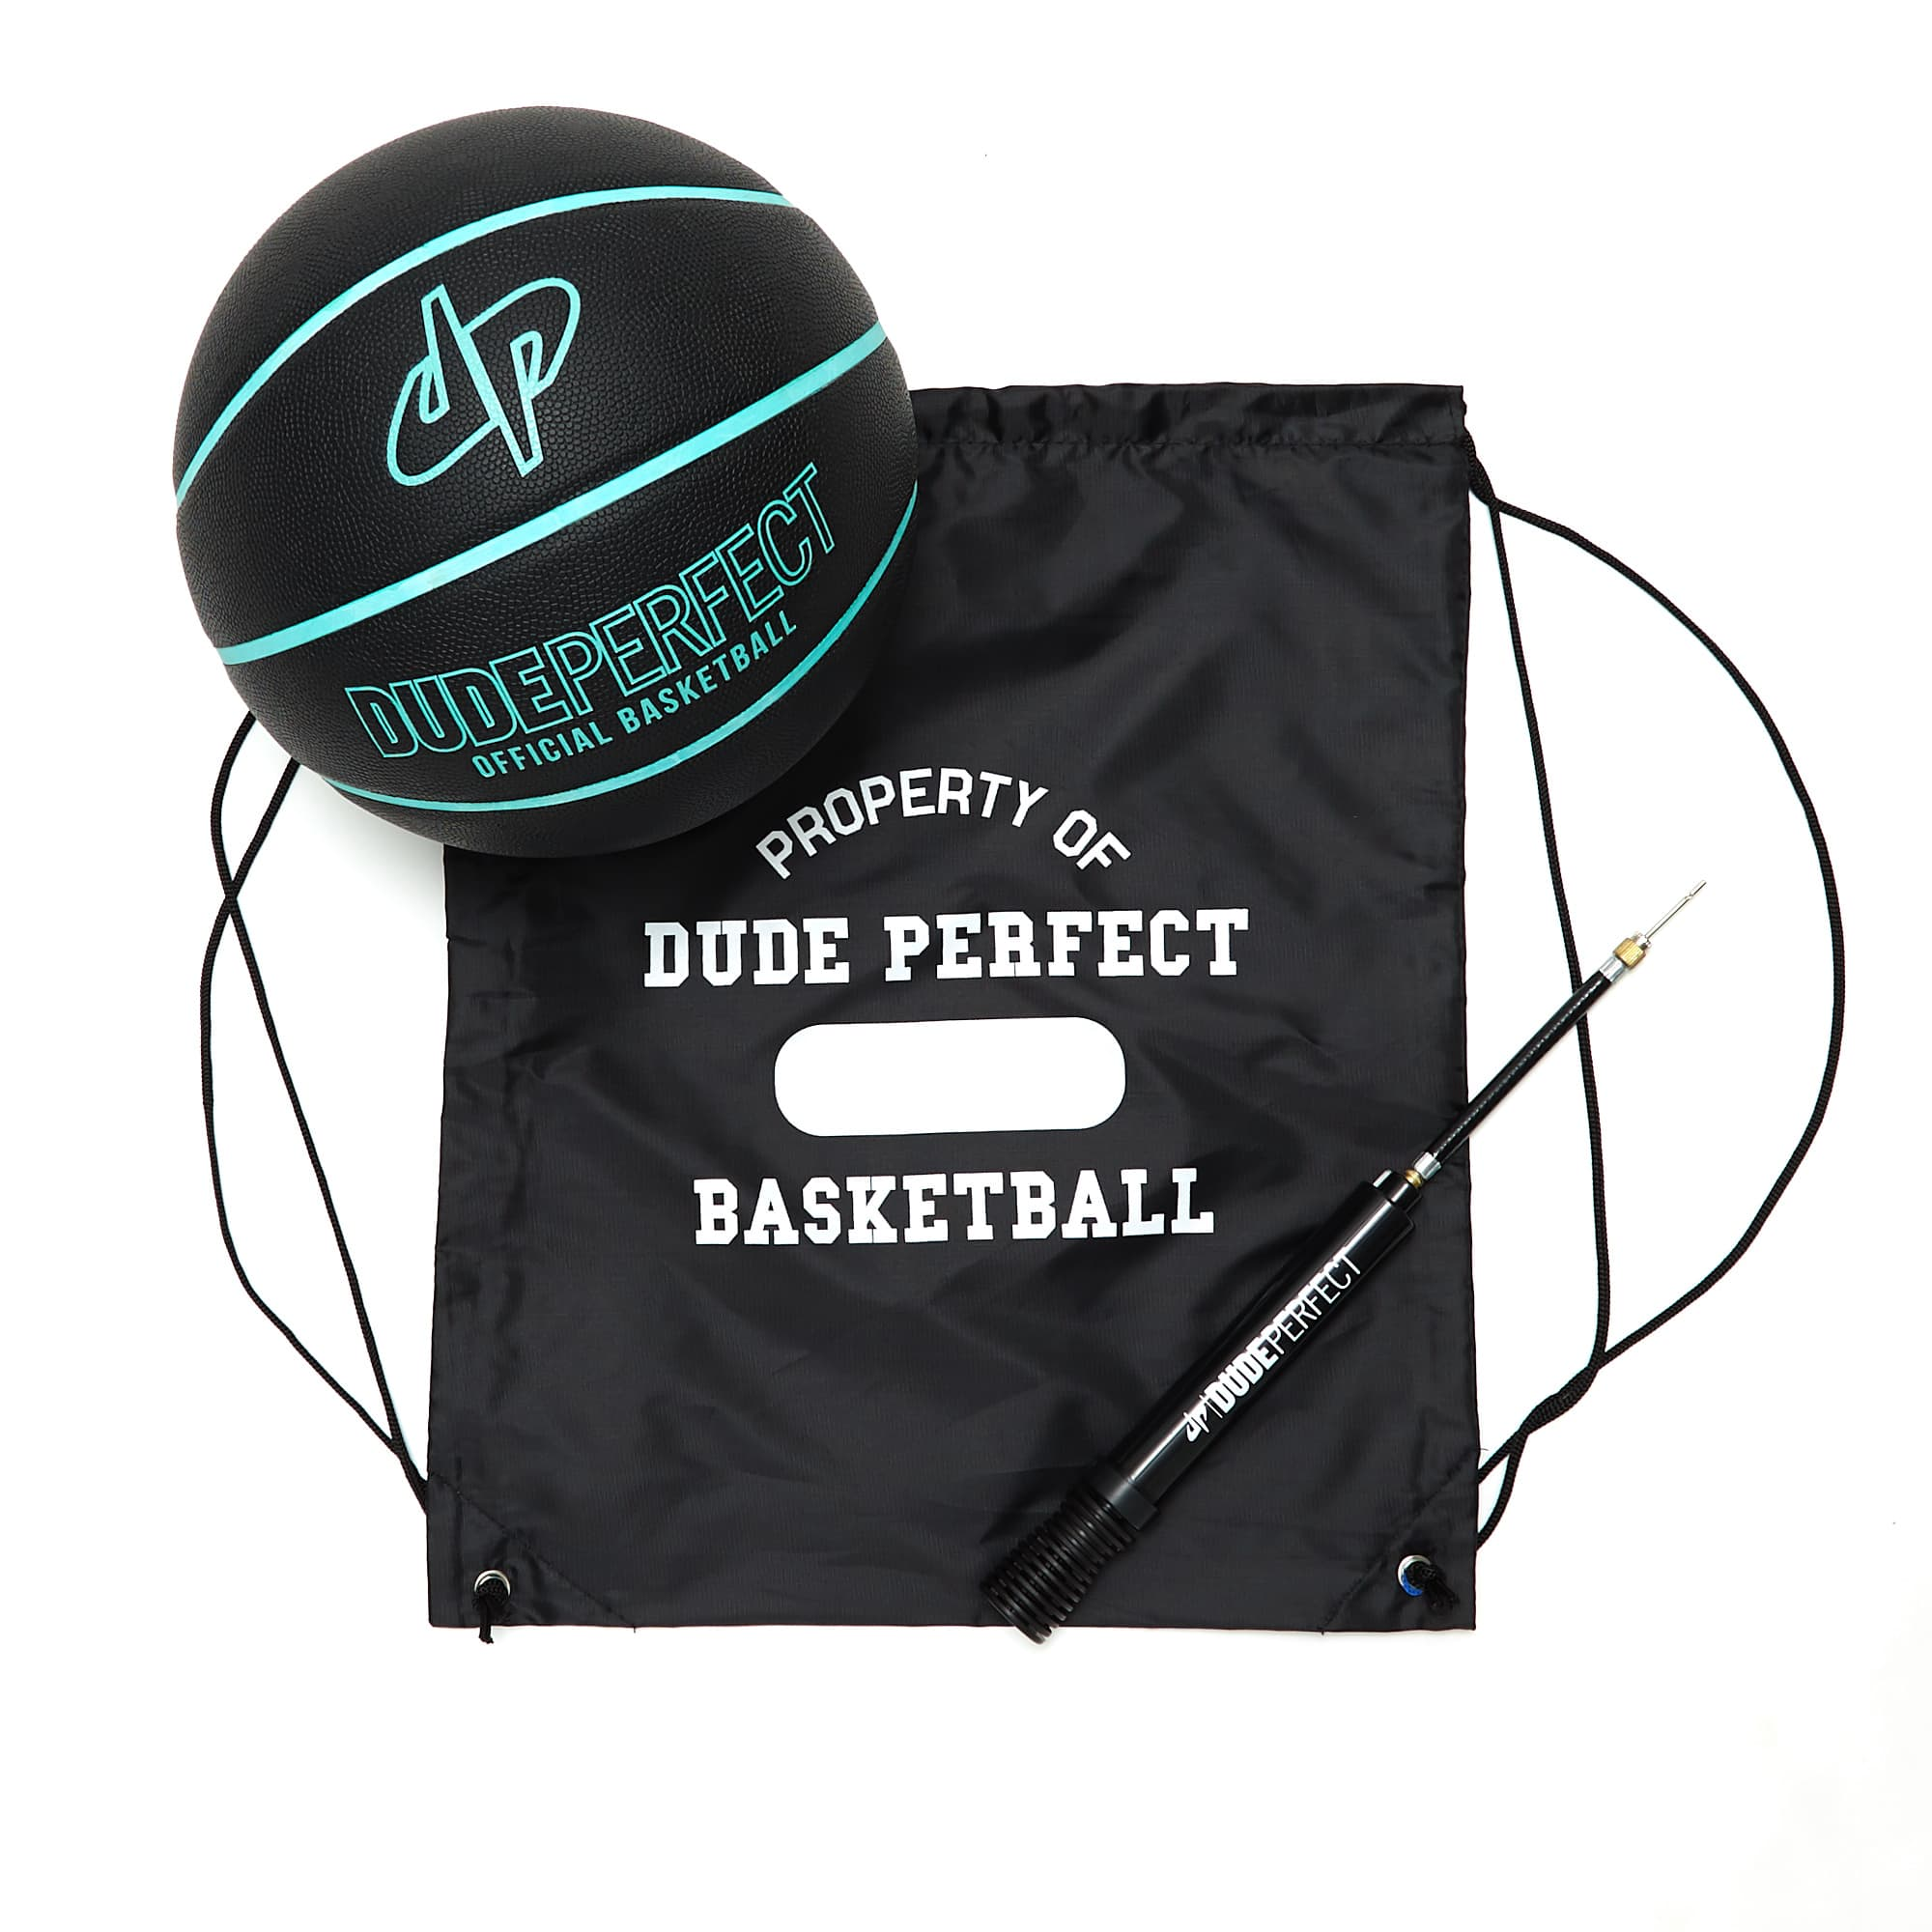 Dude Perfect All-Star Basketball Bundle